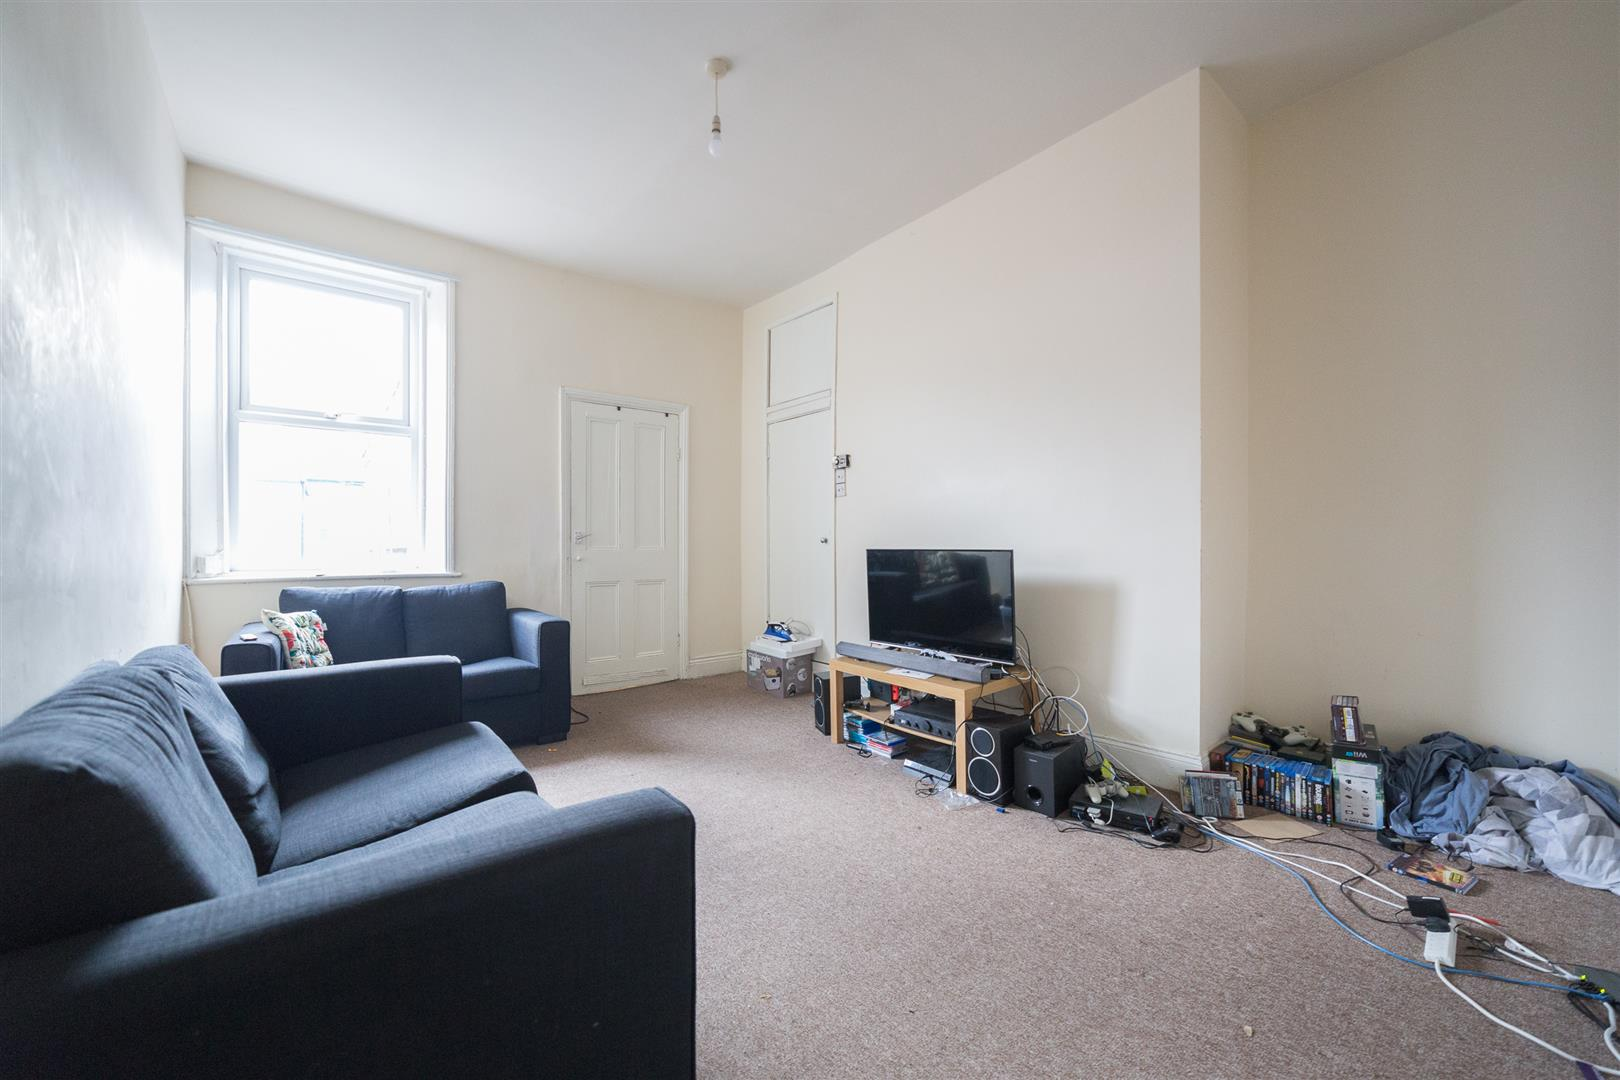 3 bed flat to rent in Newcastle Upon Tyne, NE6 5AR, NE6